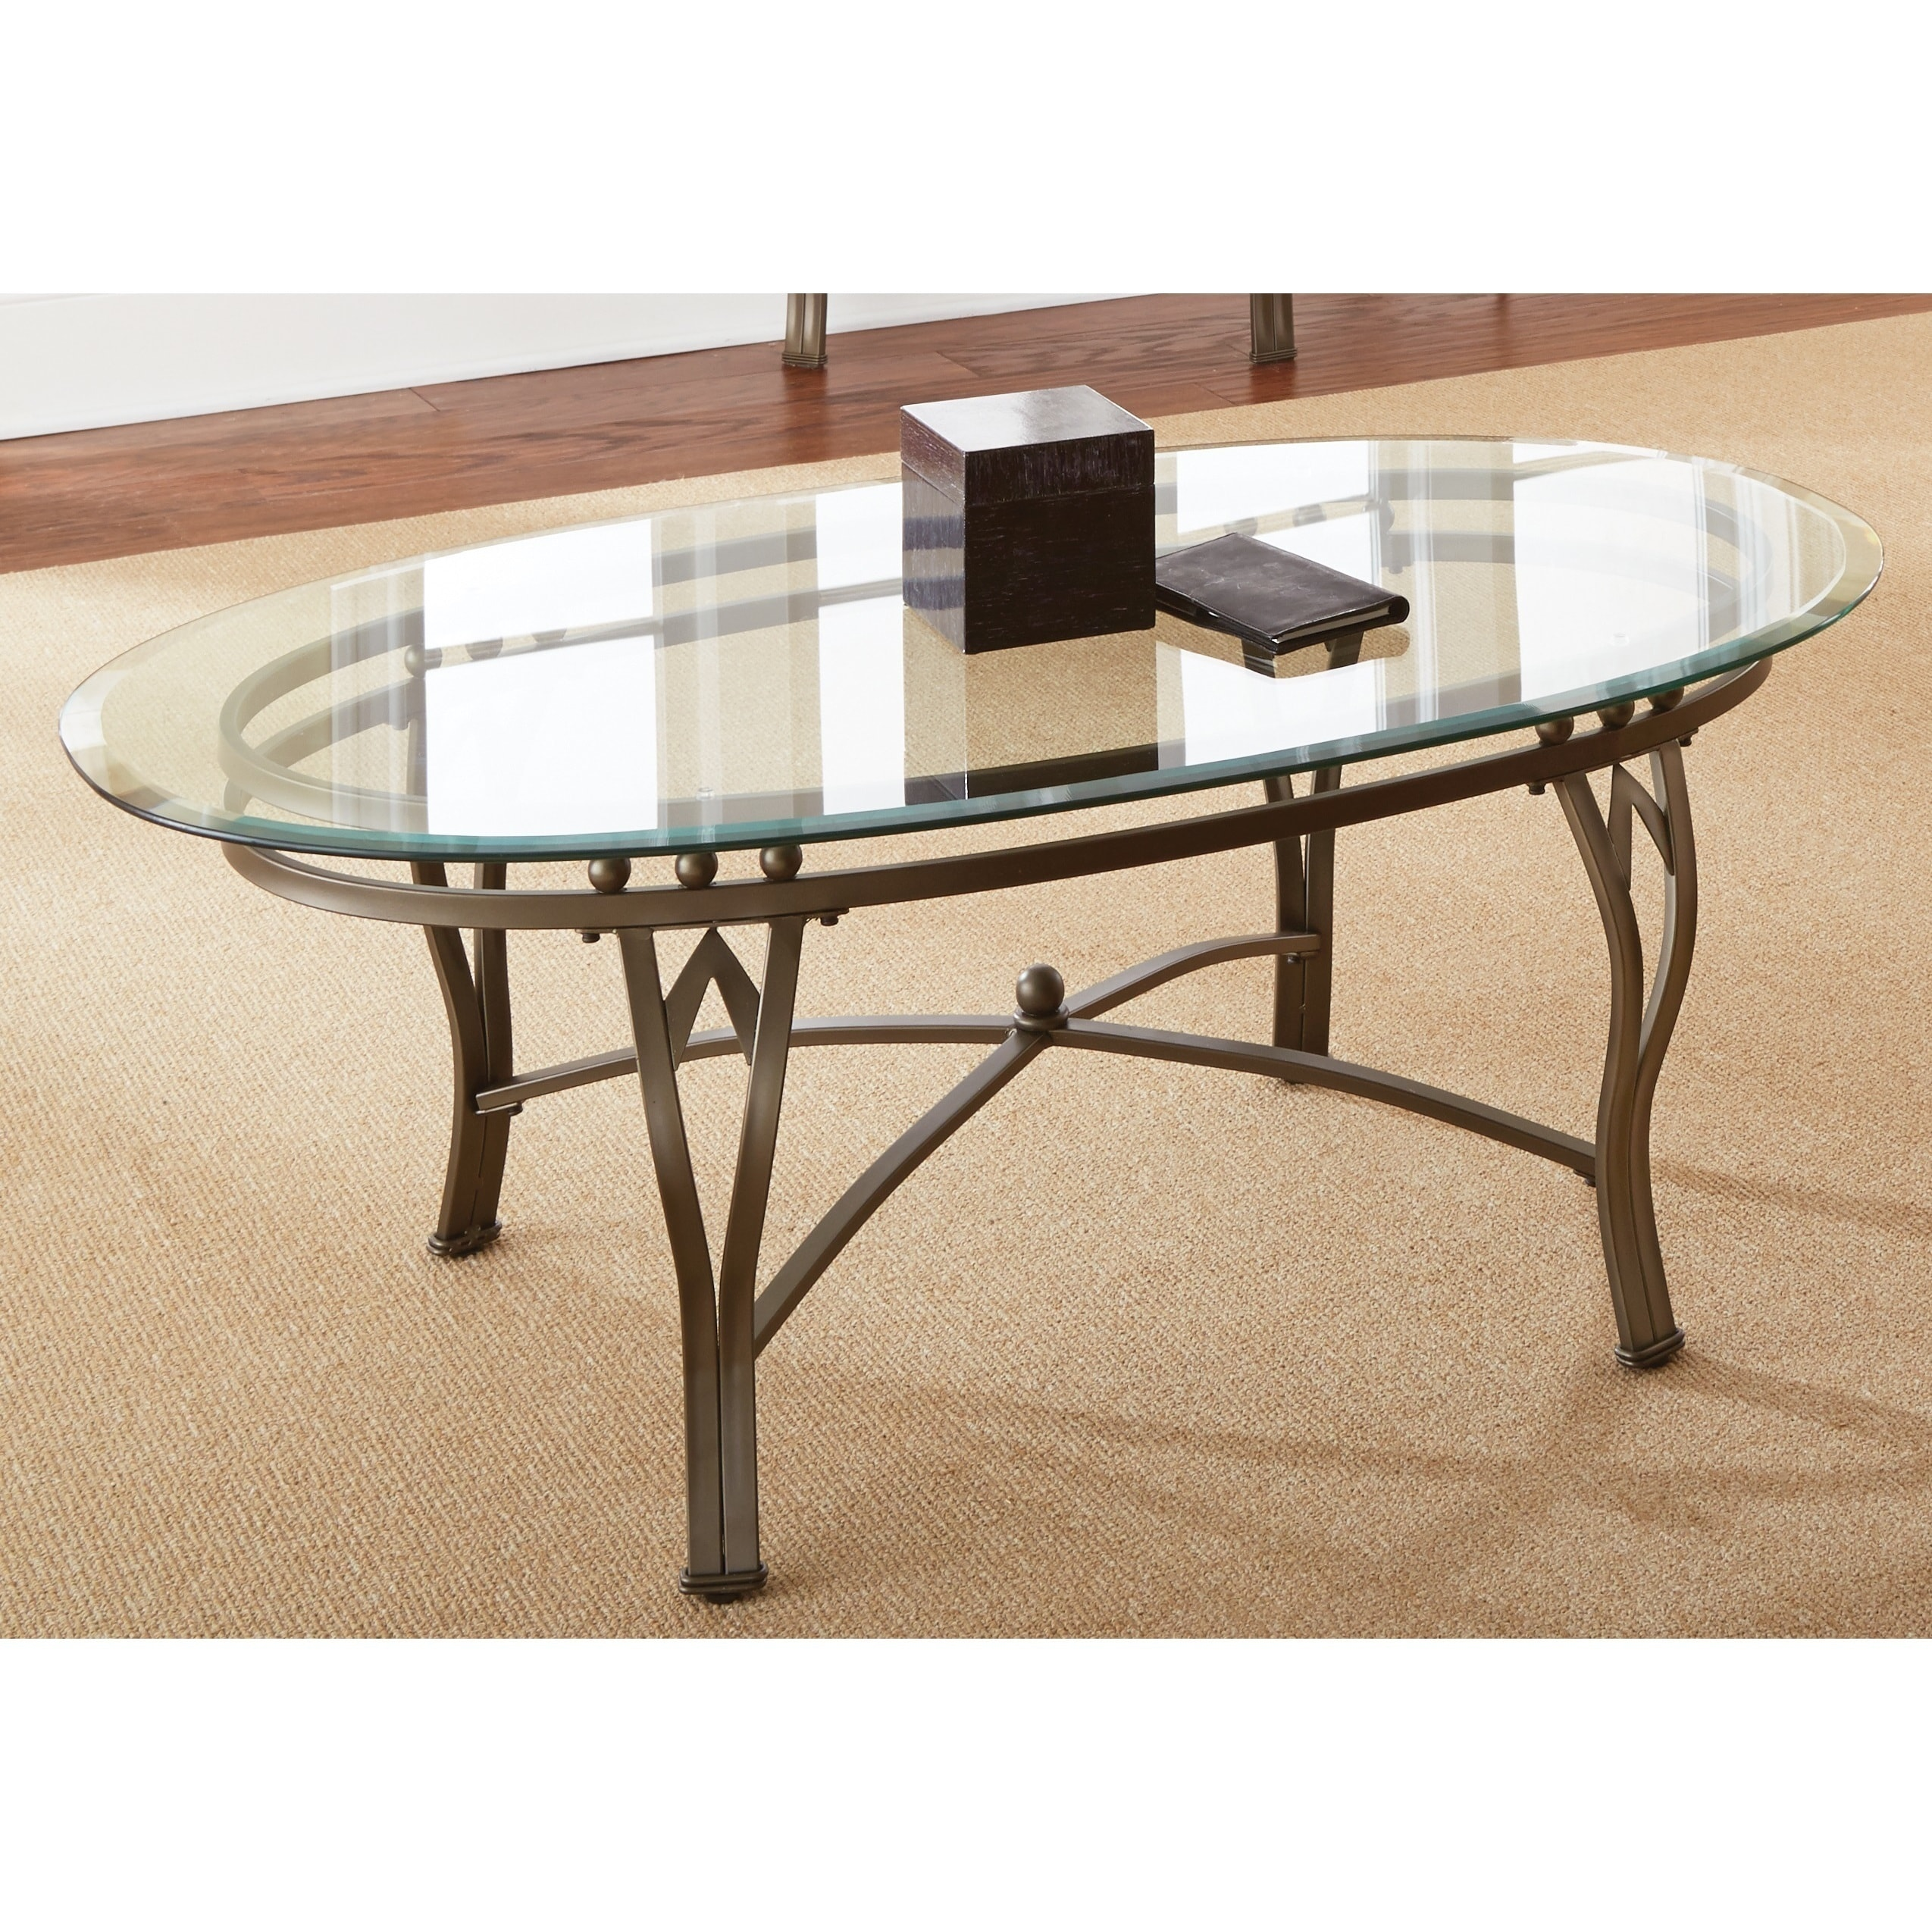 Merveilleux Buy Coffee Tables Online At Overstock.com | Our Best Living Room Furniture  Deals